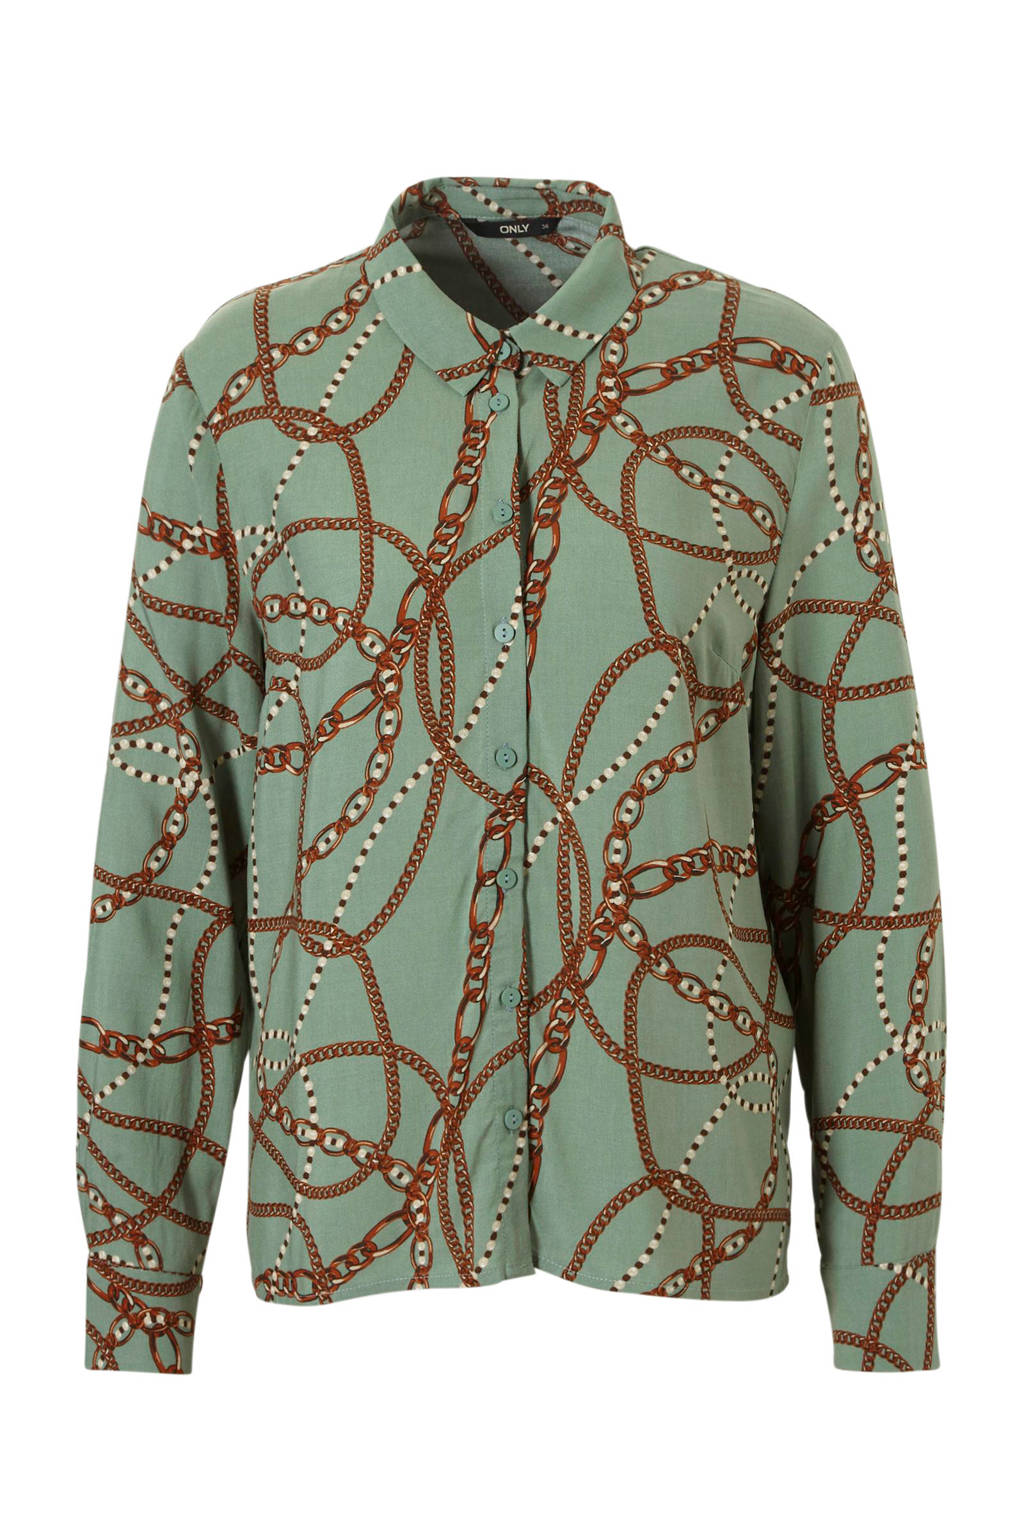 ONLY blouse met all over print, Groen/bruin/wit